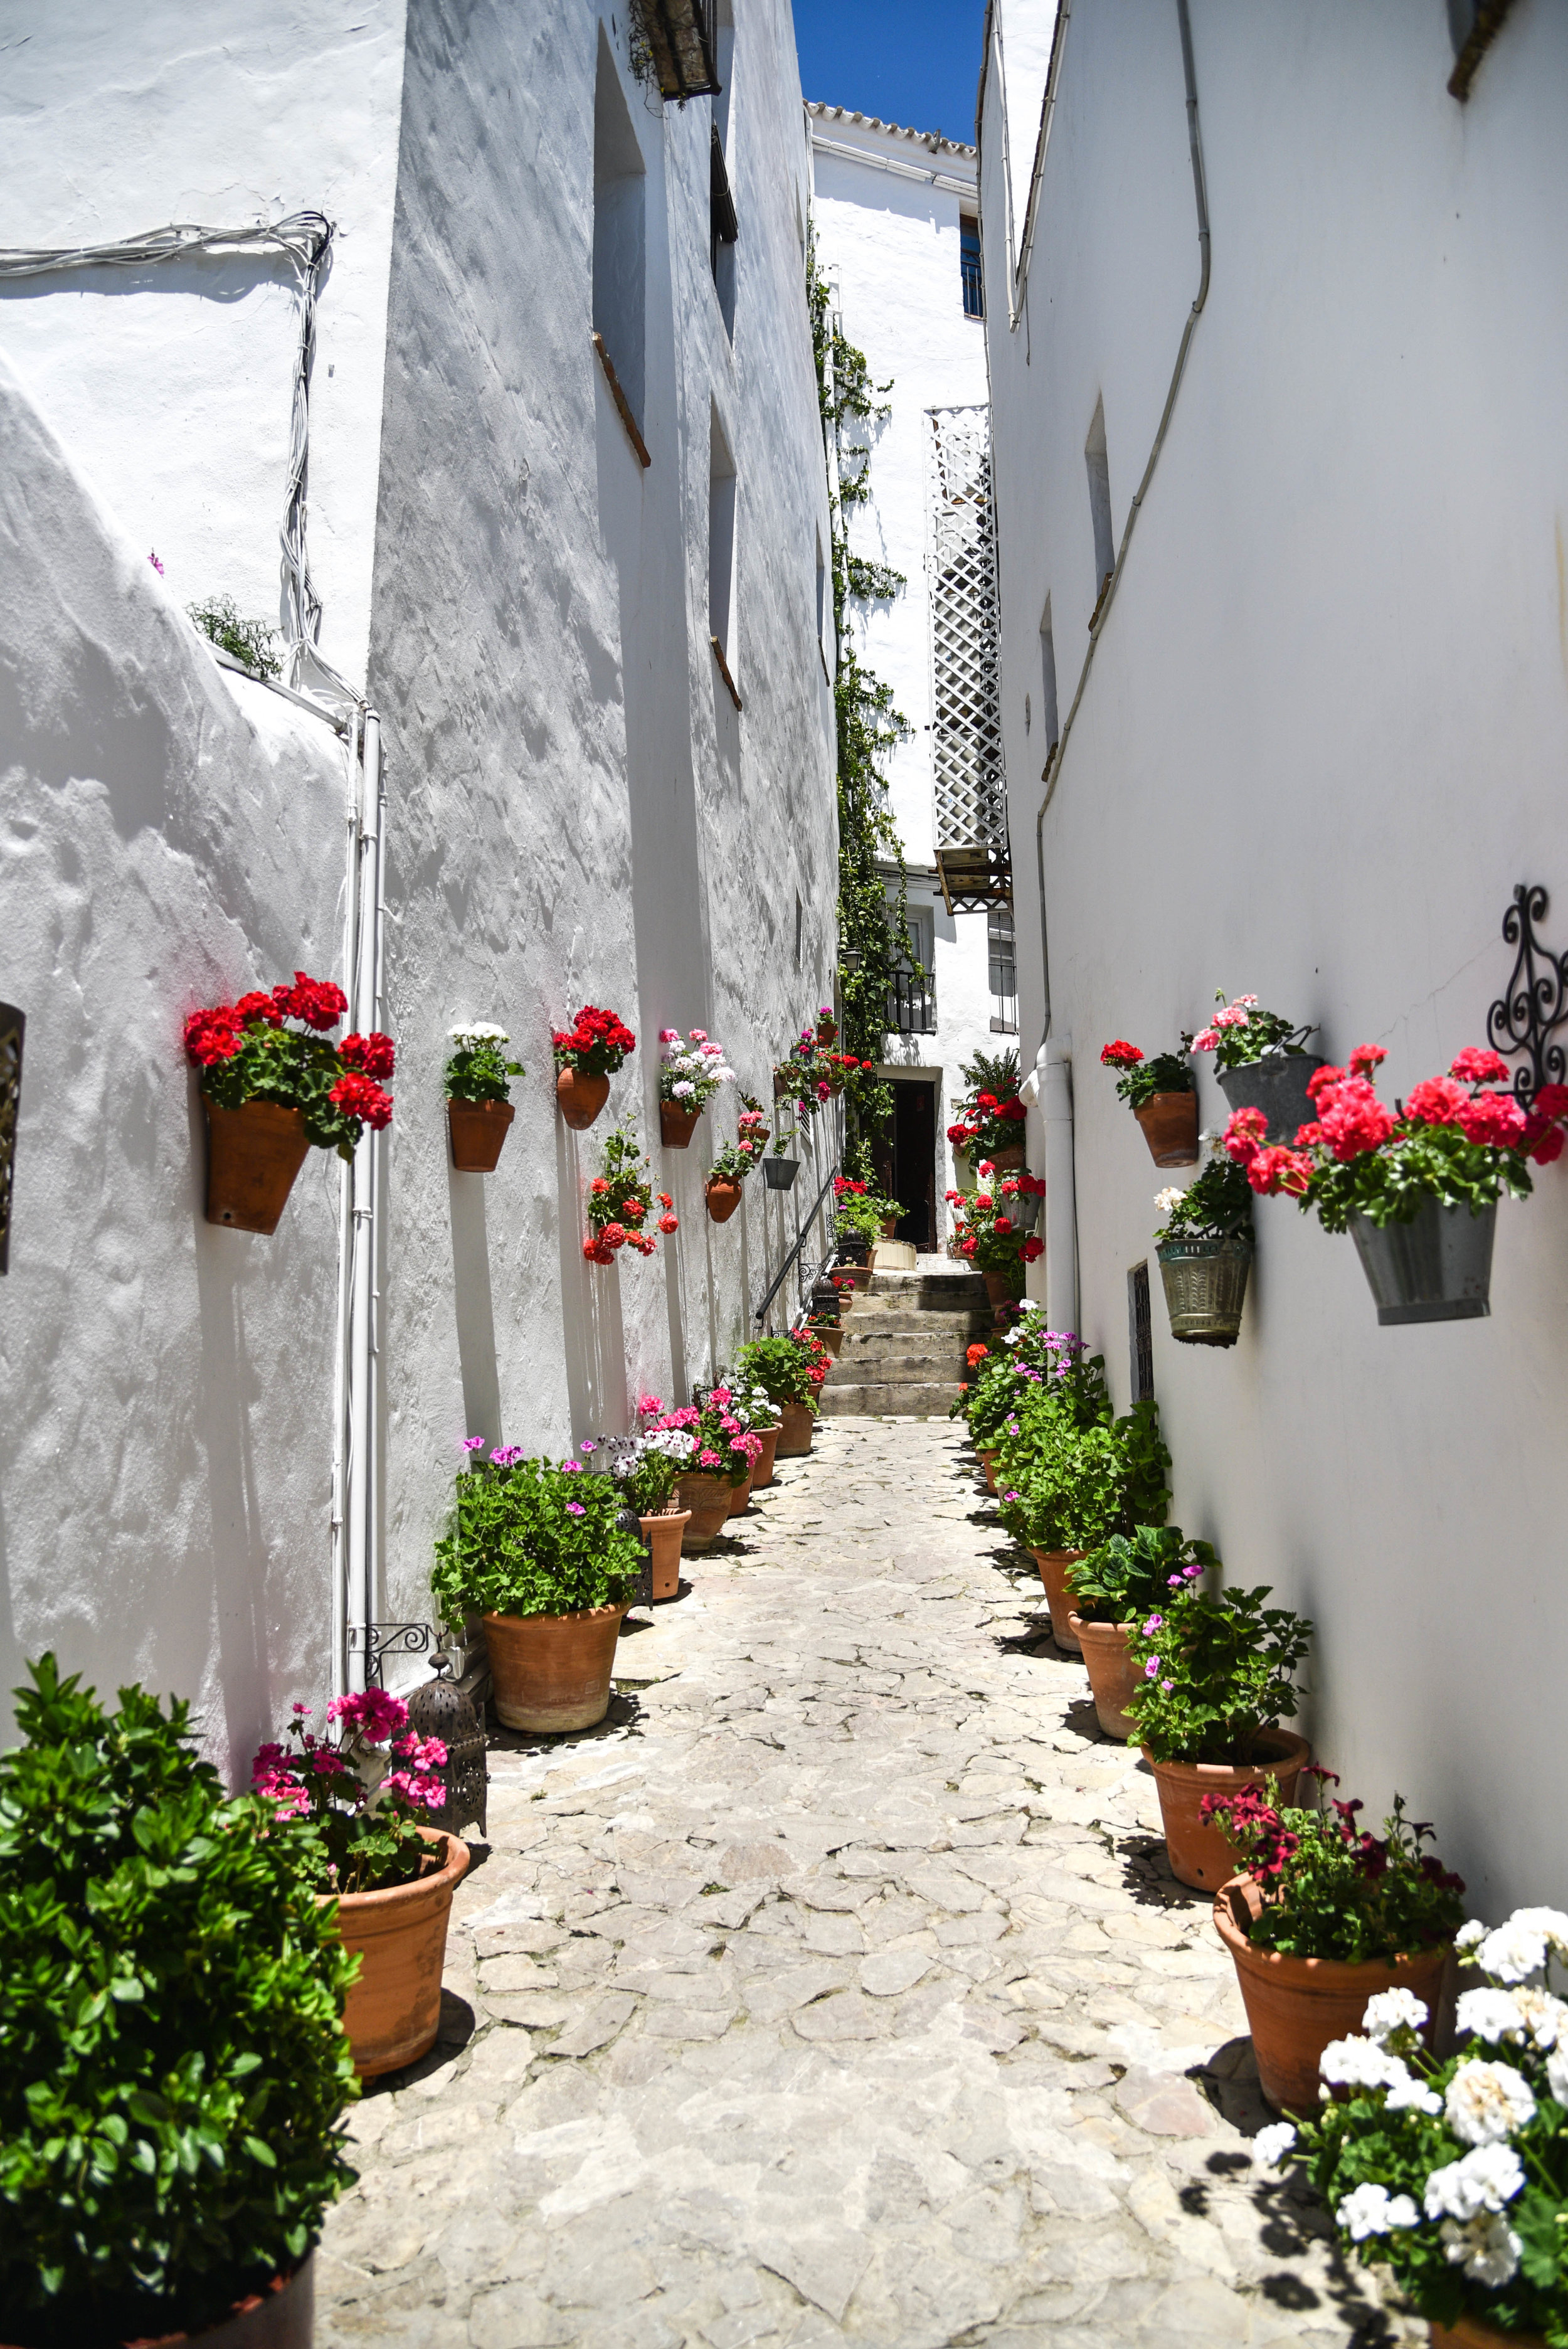 The geranium-filled alley behind La Casa del Califa